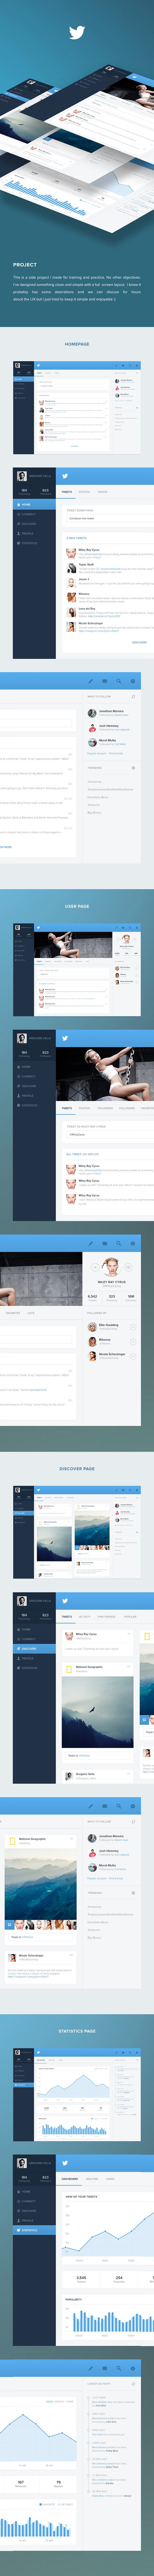 Twitter - Redesign of UI details